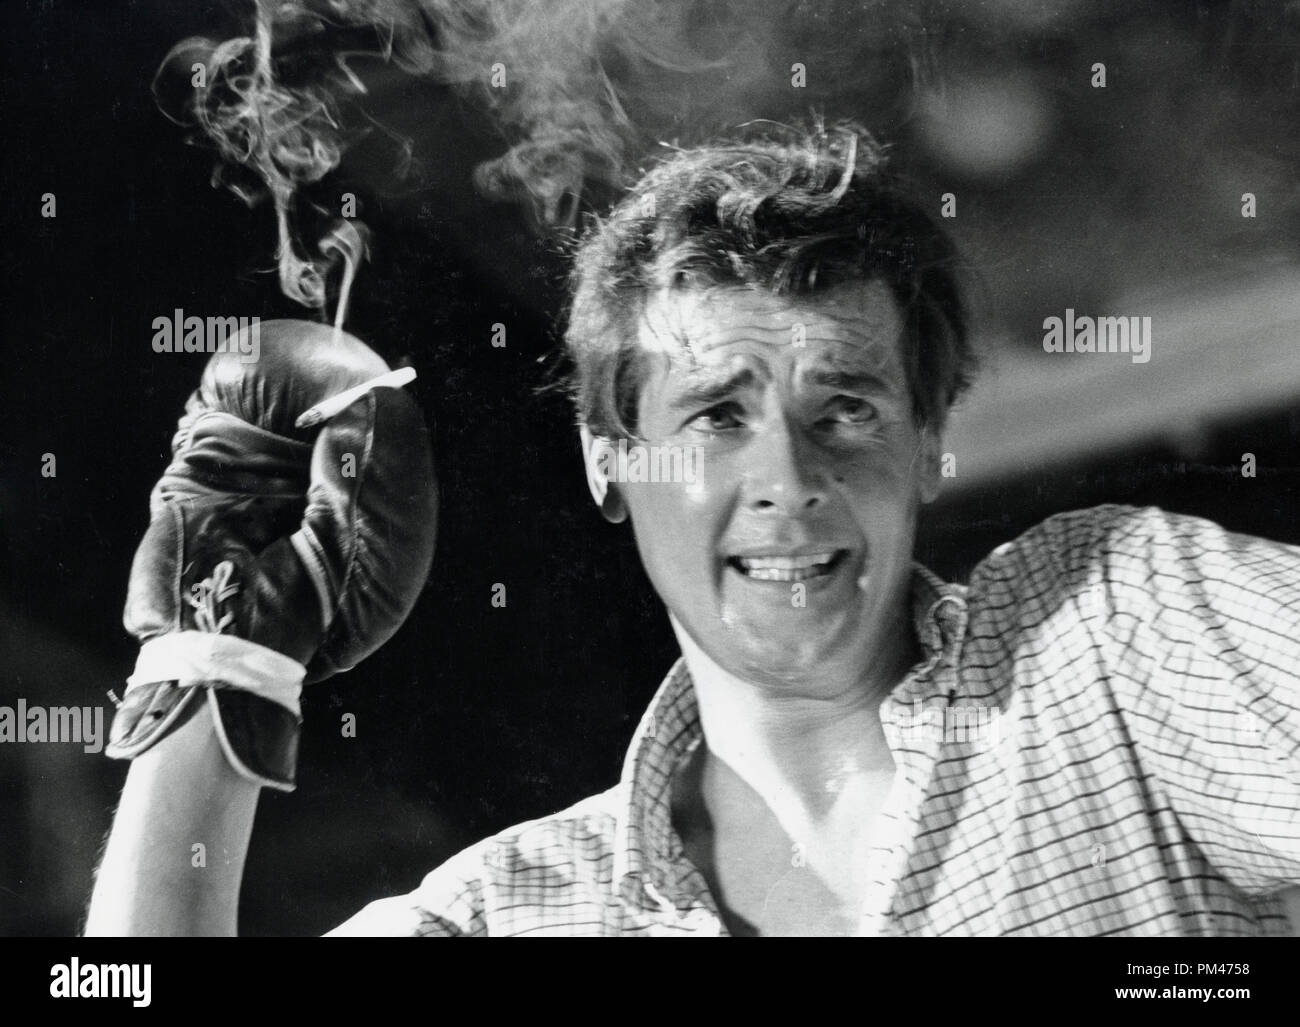 Roger Moore during a fight scene for the TV series, 'The Saint' circa 1966.   File Reference # 1102_003THA © JRC /The Hollywood Archive - All Rights Reserved - Stock Image